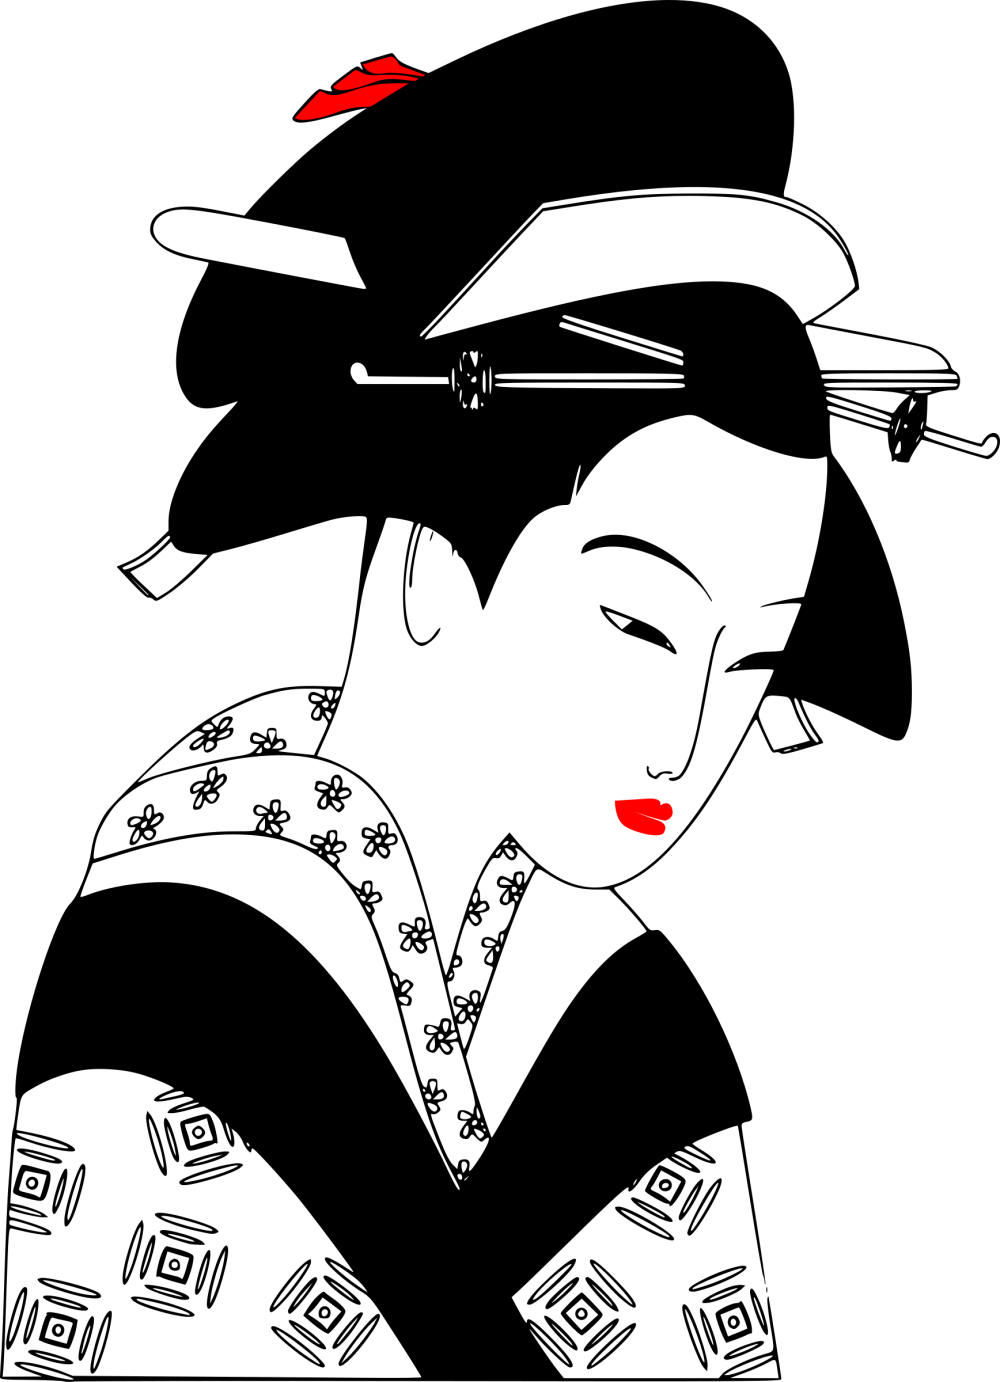 medium resolution of download png image japanese clipart 1575